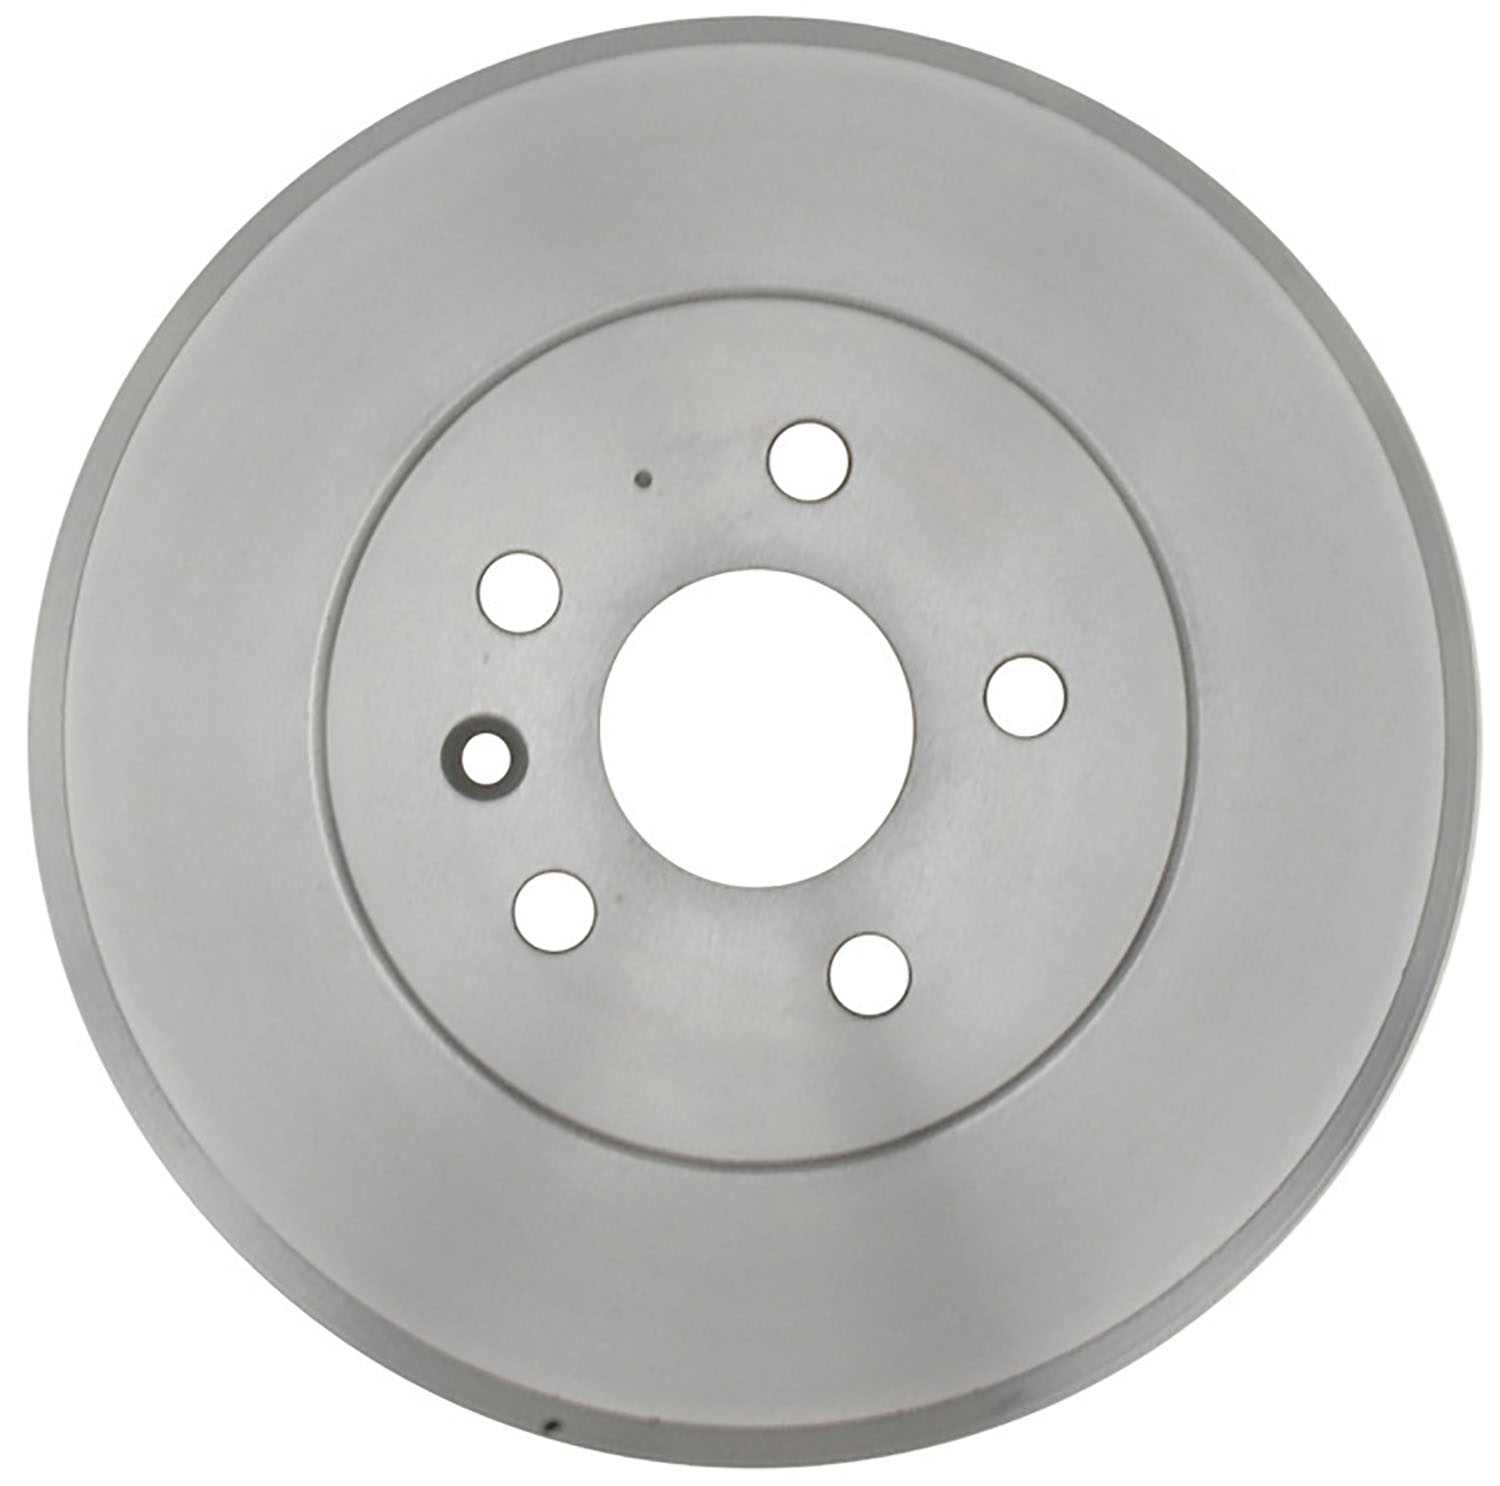 ACDELCO PROFESSIONAL BRAKES - Brake Drum (Rear) - ADU 18B601